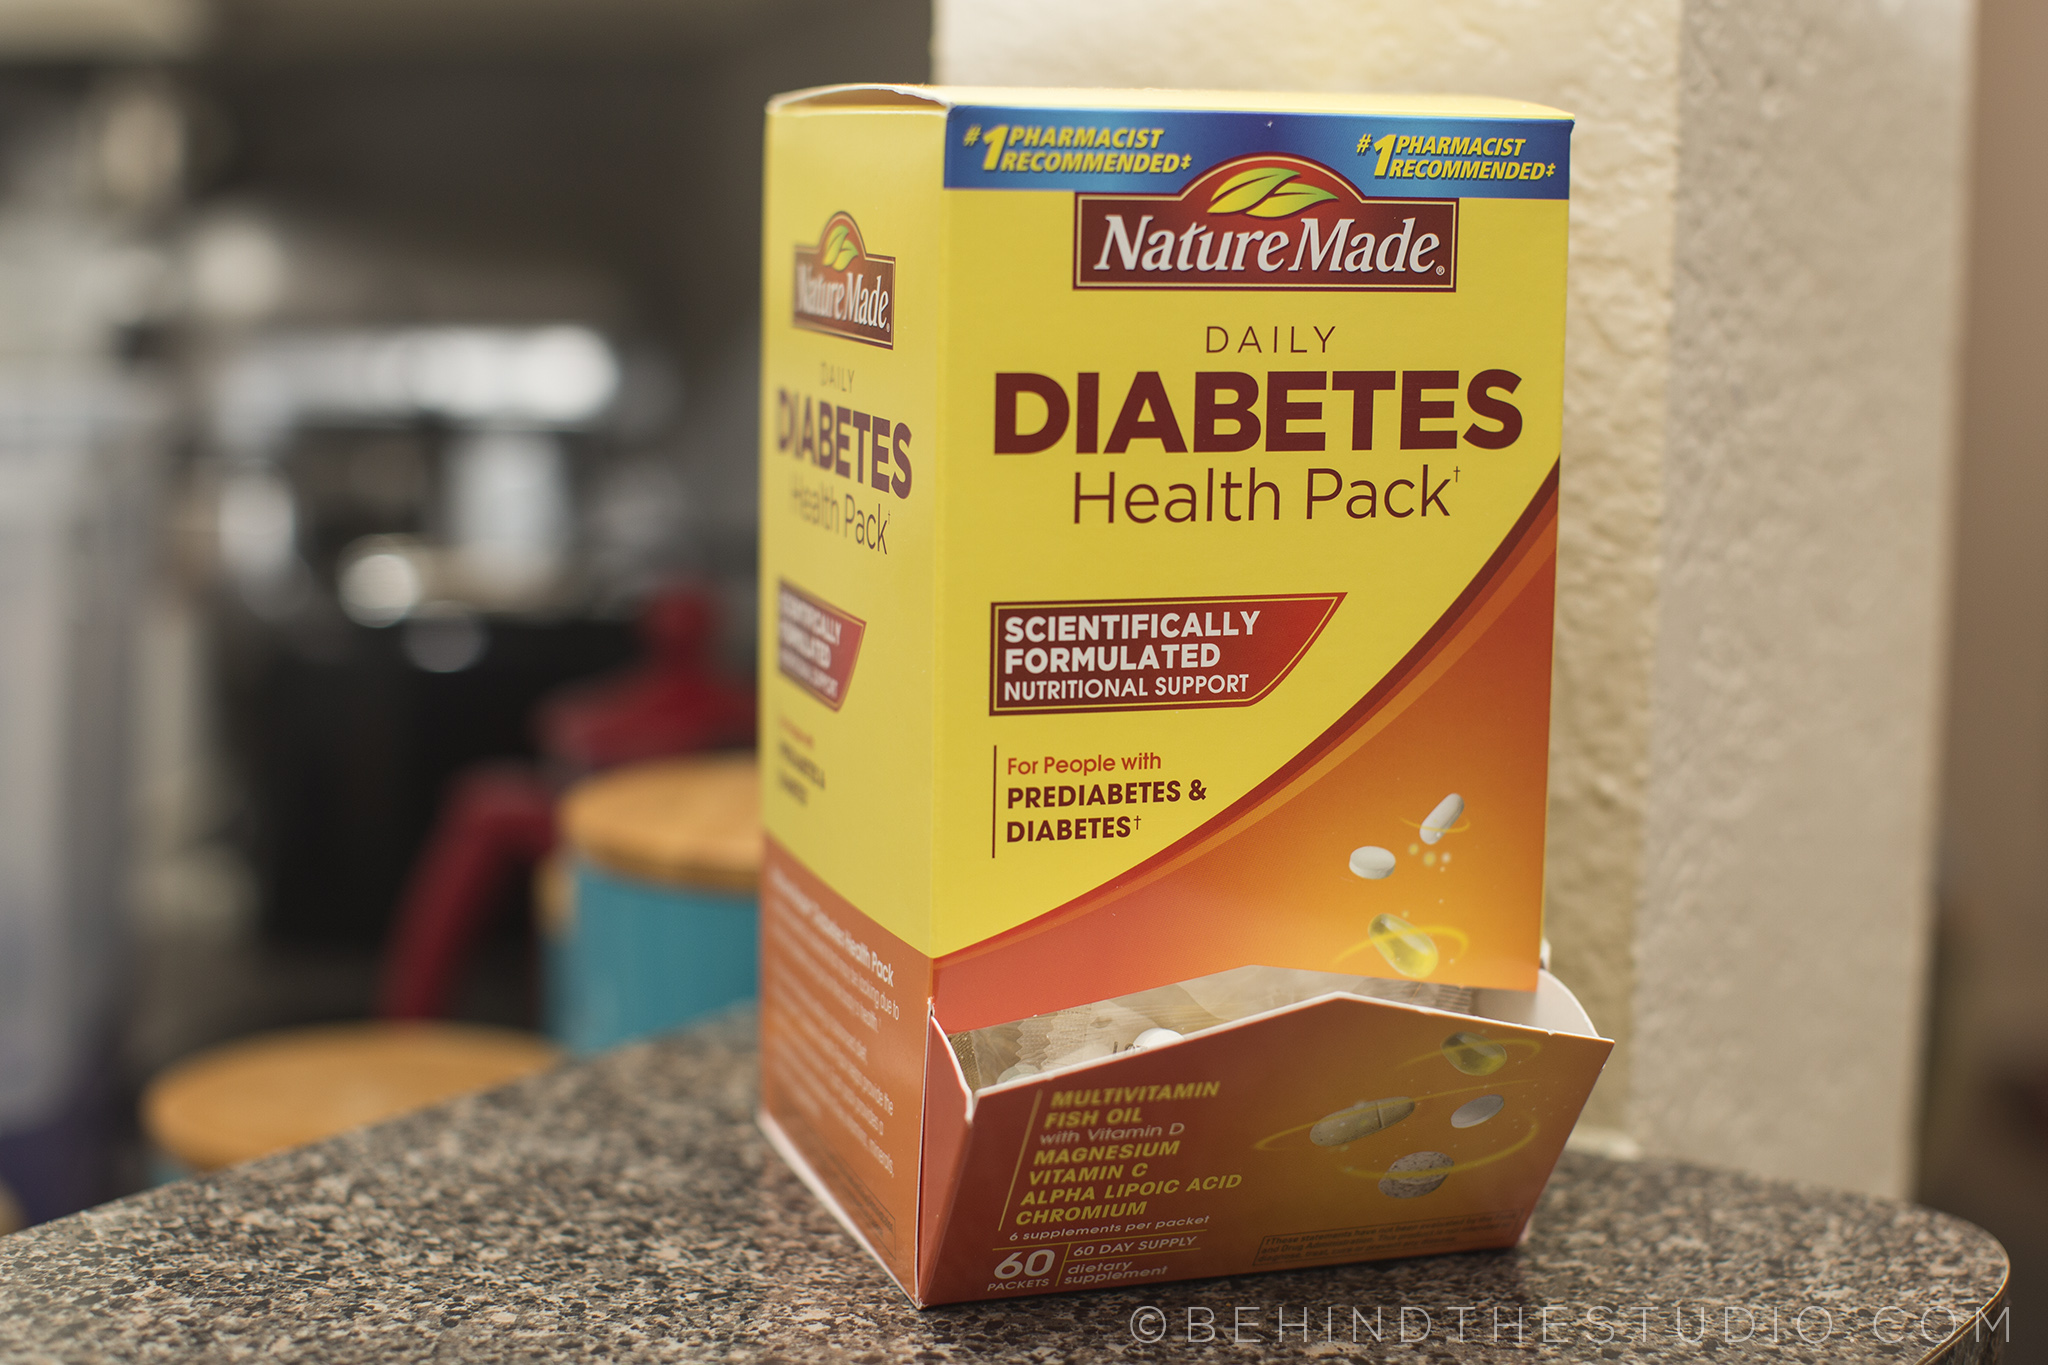 Nature Made® Diabetes pack from Sam's Club - #AD #NatureMadeHealthPack #CollectiveBias